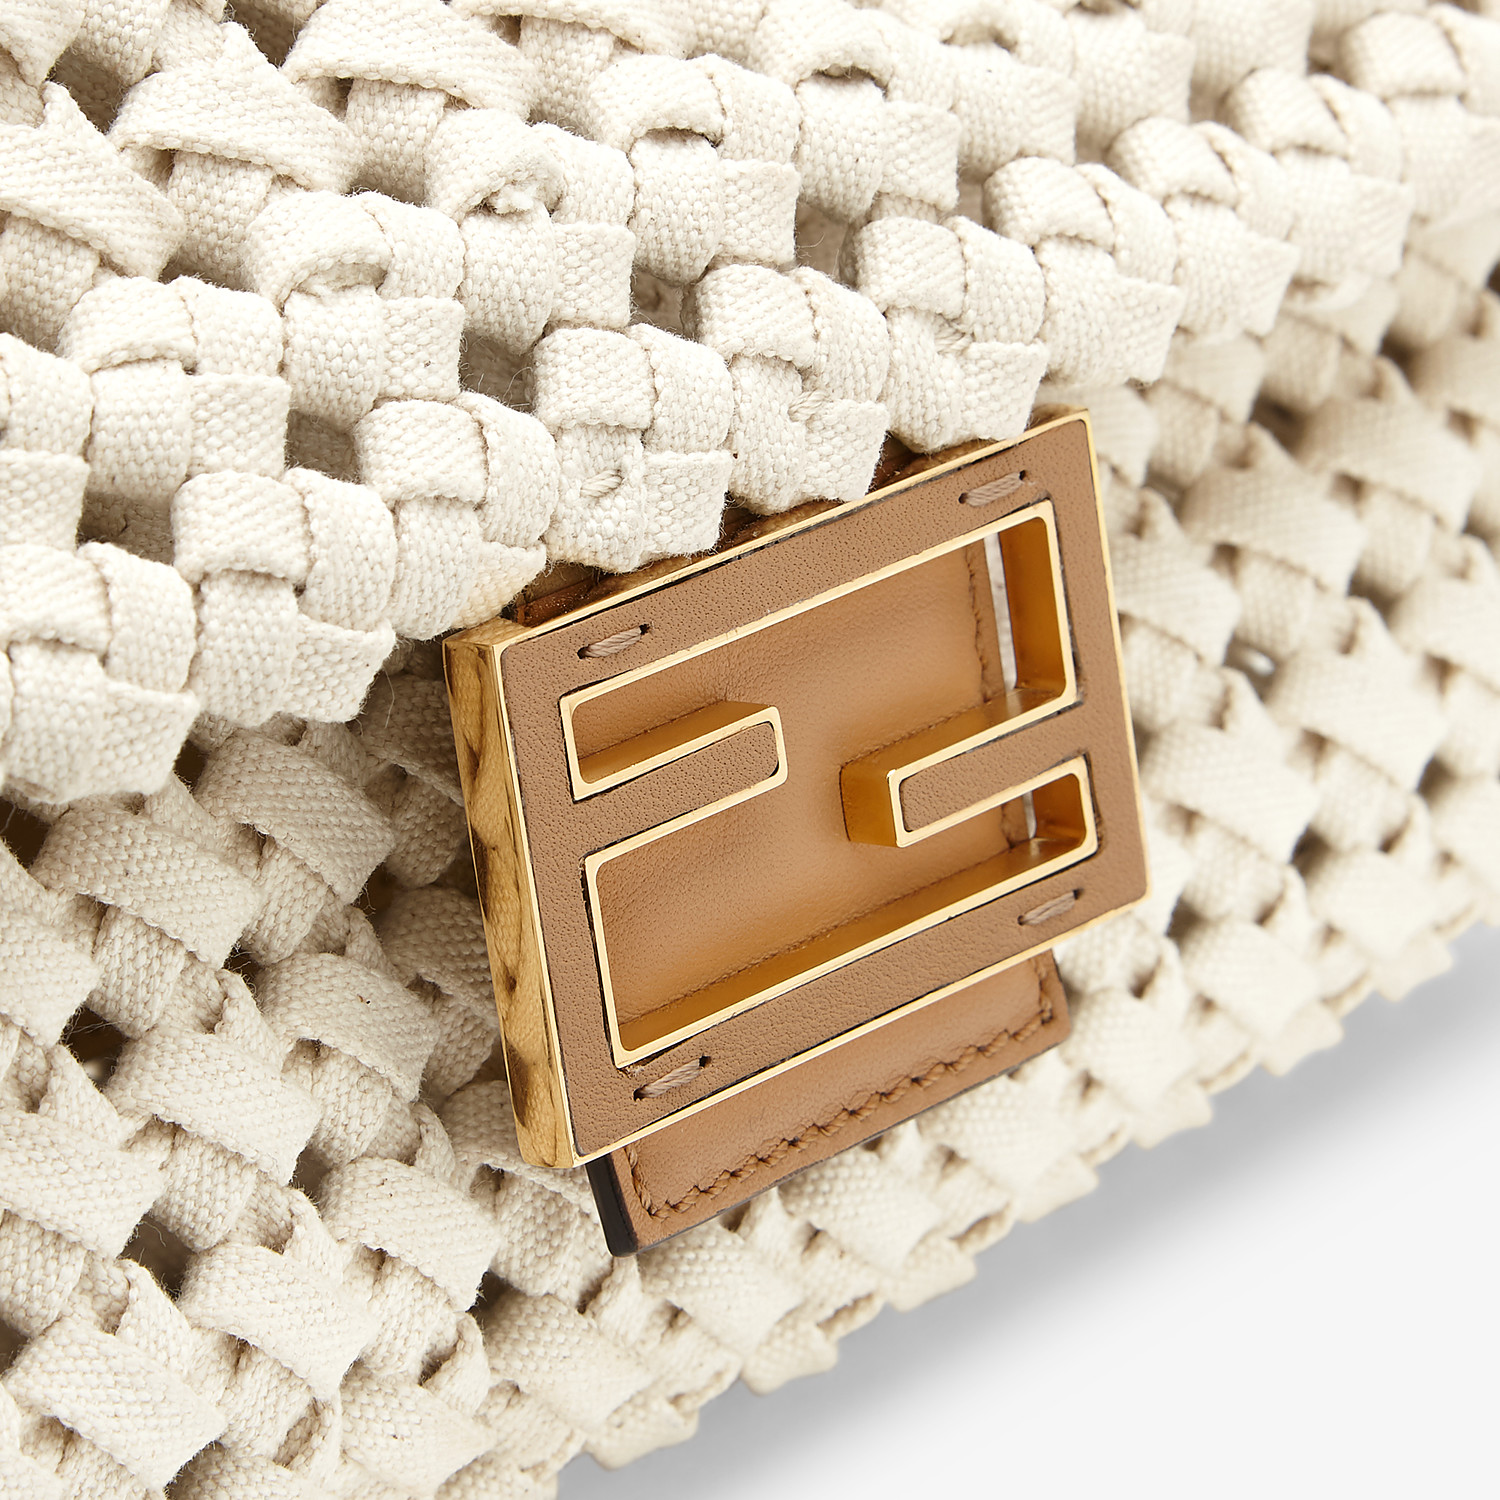 FENDI BAGUETTE - Tasche aus geflochtenem Canvas in Beige - view 6 detail